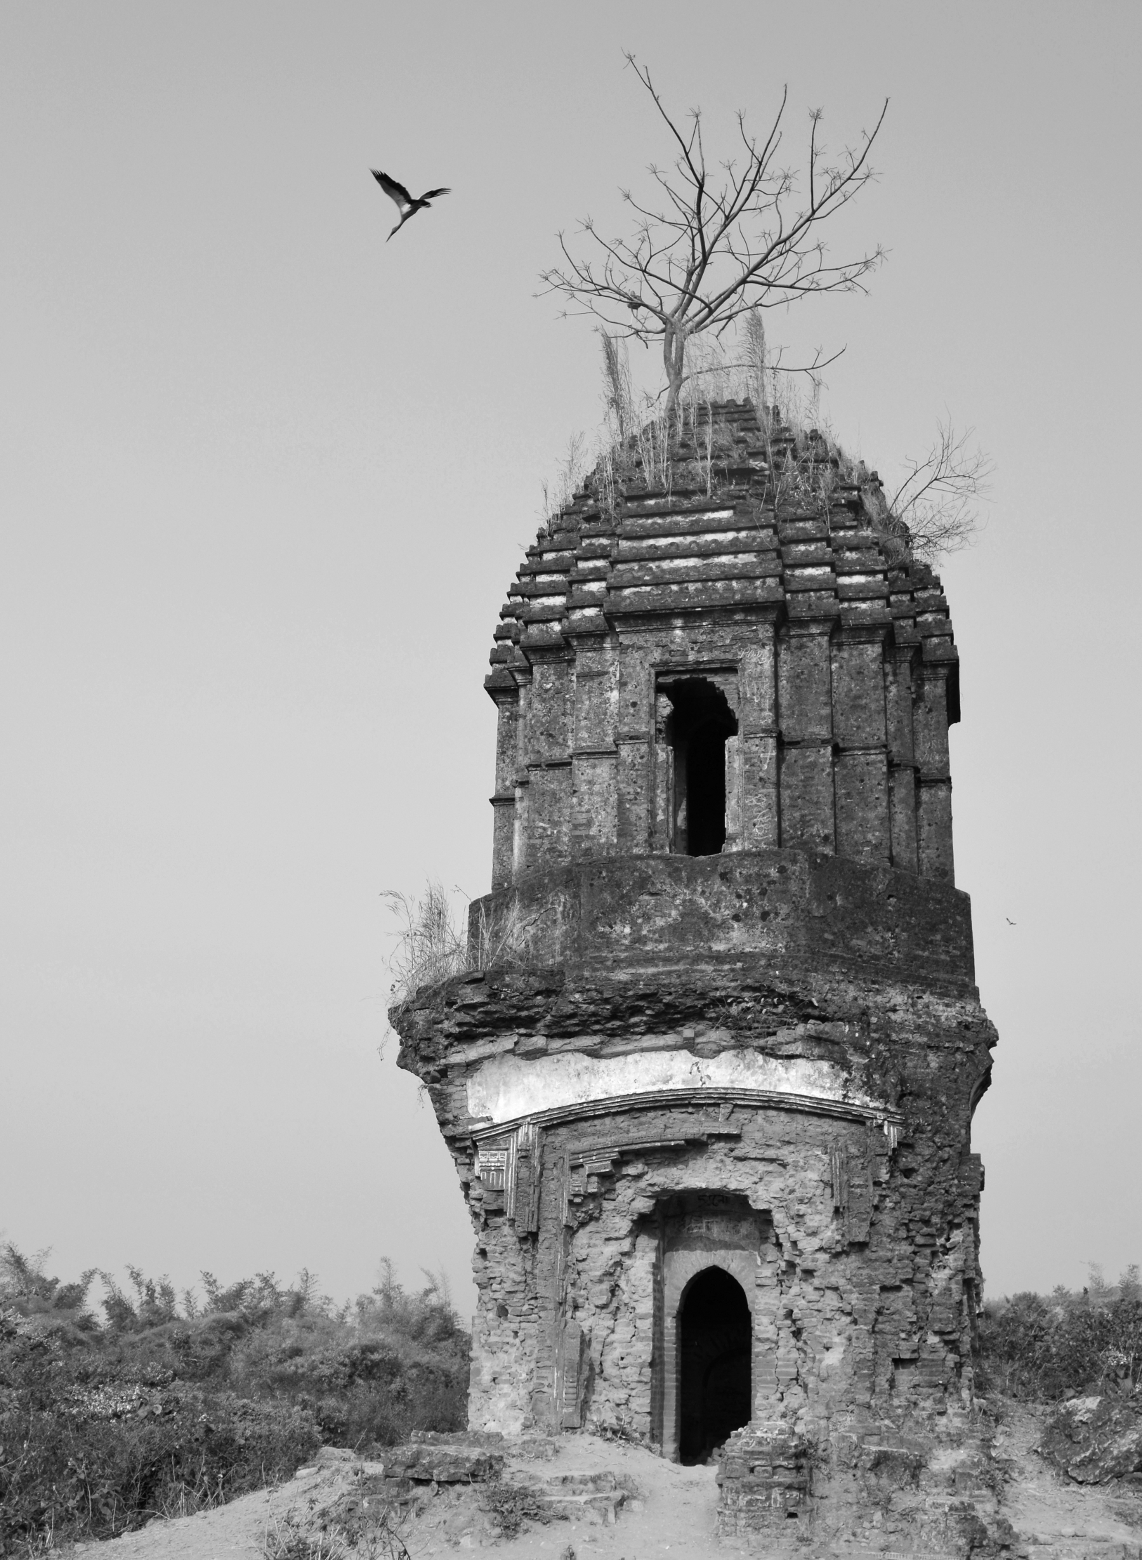 During visit at Purulia of West Bengal, I have taken this photo. Originally the picture was taken in colour and then converted to BW as the subject demands.